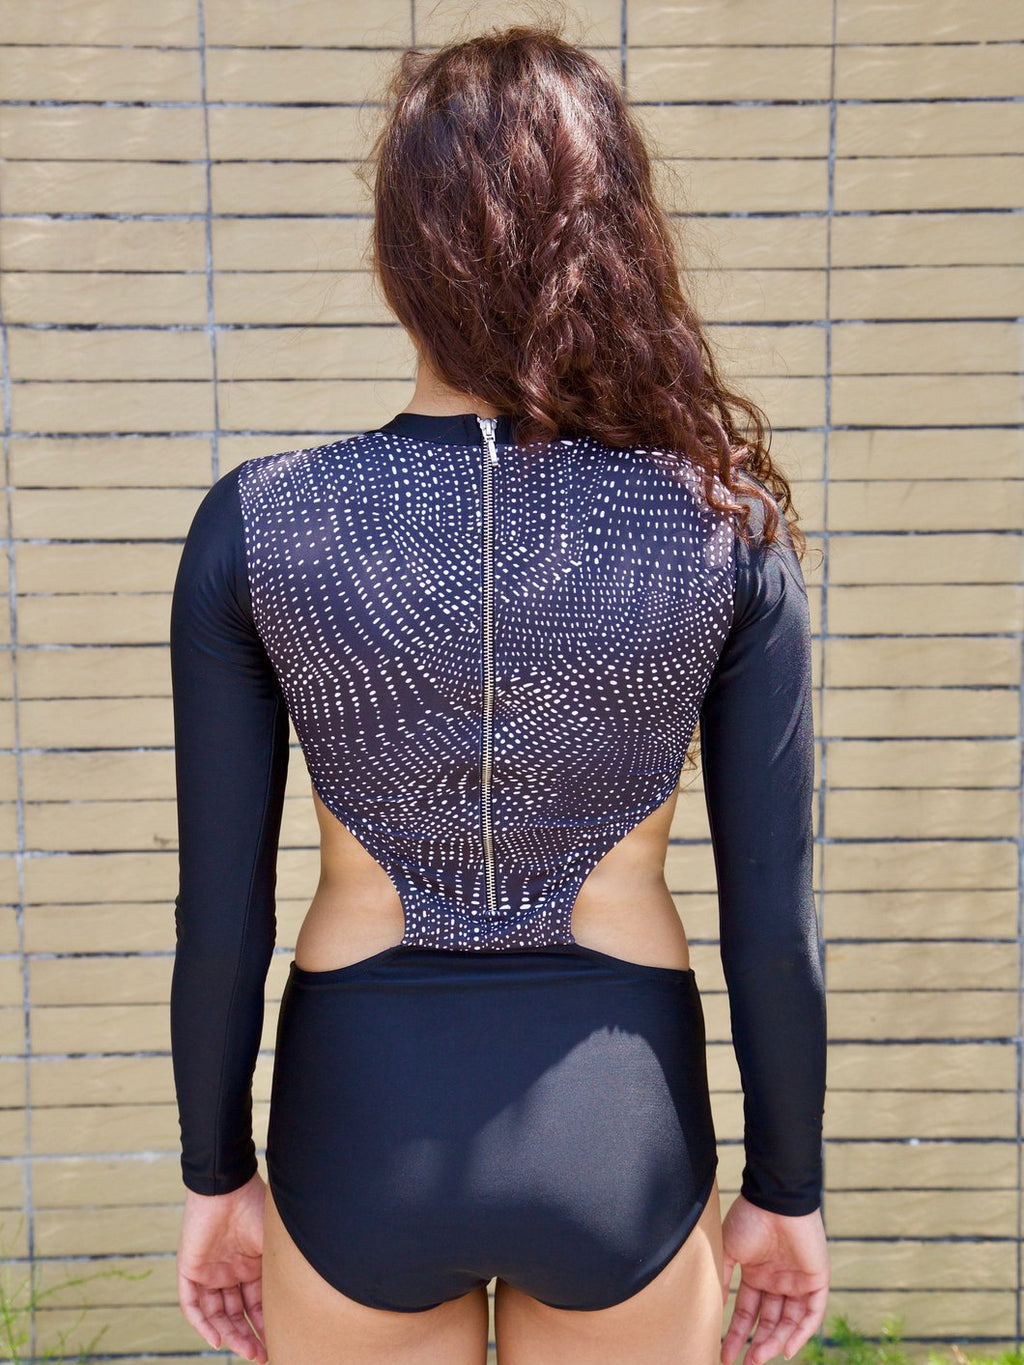 B/W Spotted Rashguard (S ONLY)